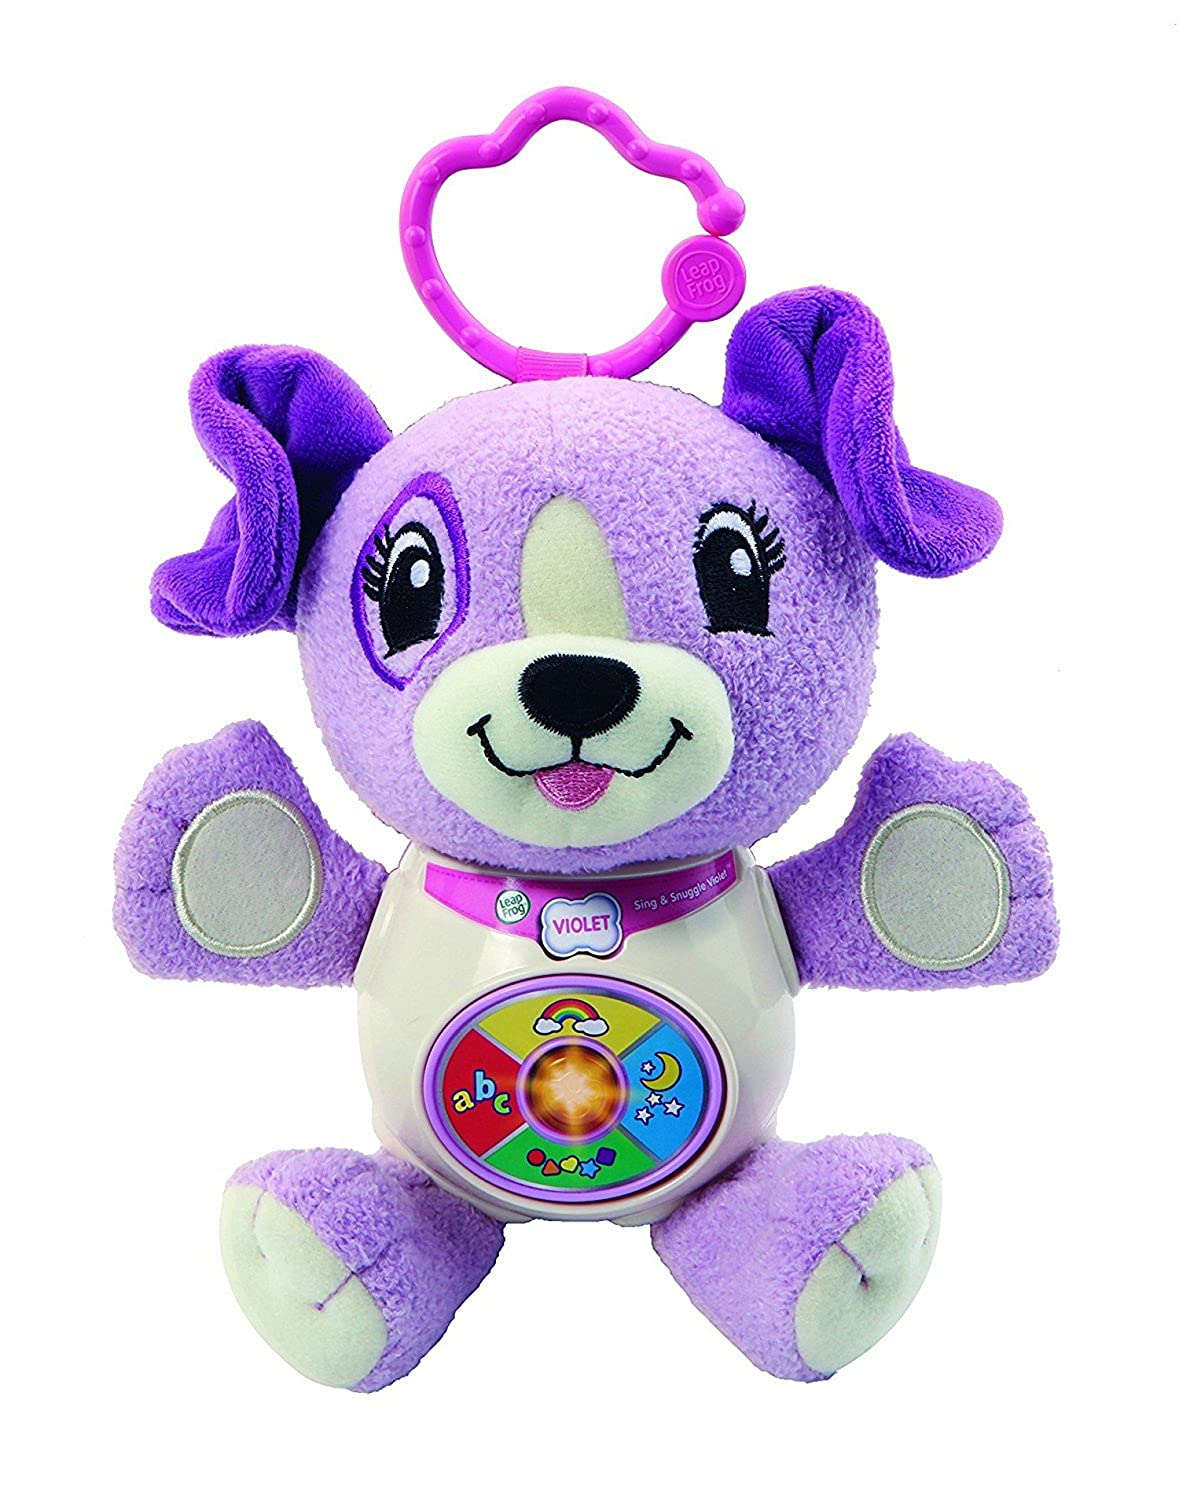 """LeapFrog 601803 """"Sing and Snuggle Toy, Violet"""